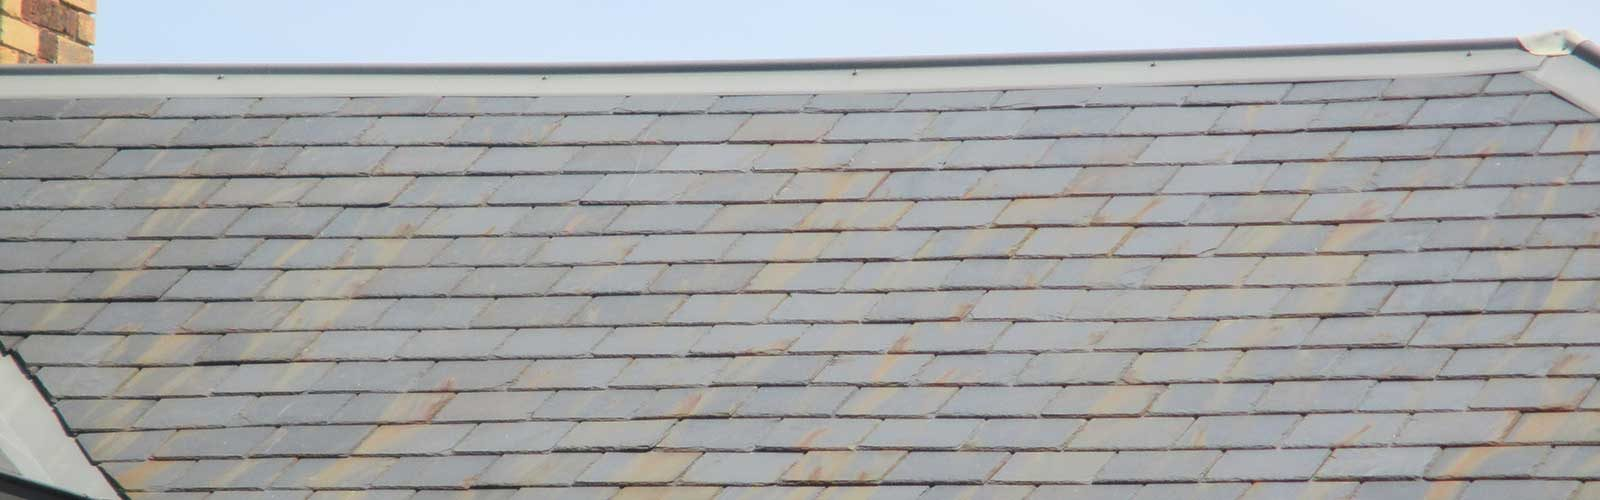 Rust stains on a relatively new slate roof